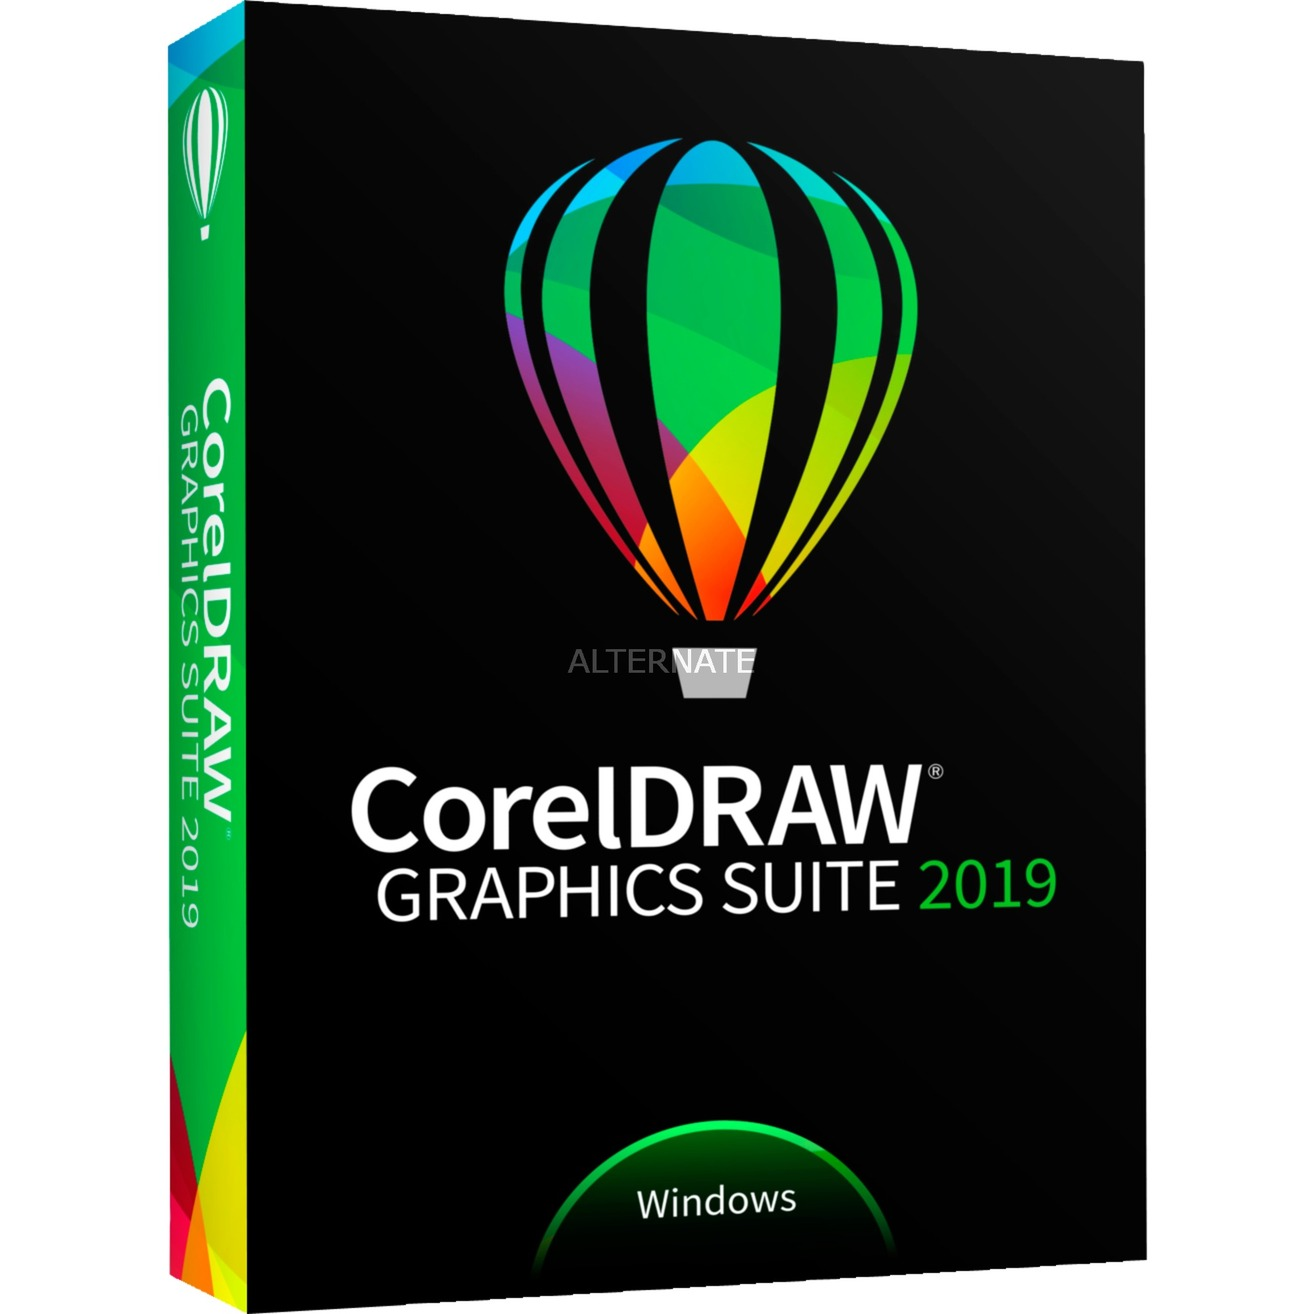 CorelDRAW Graphics Suite 2019, Software